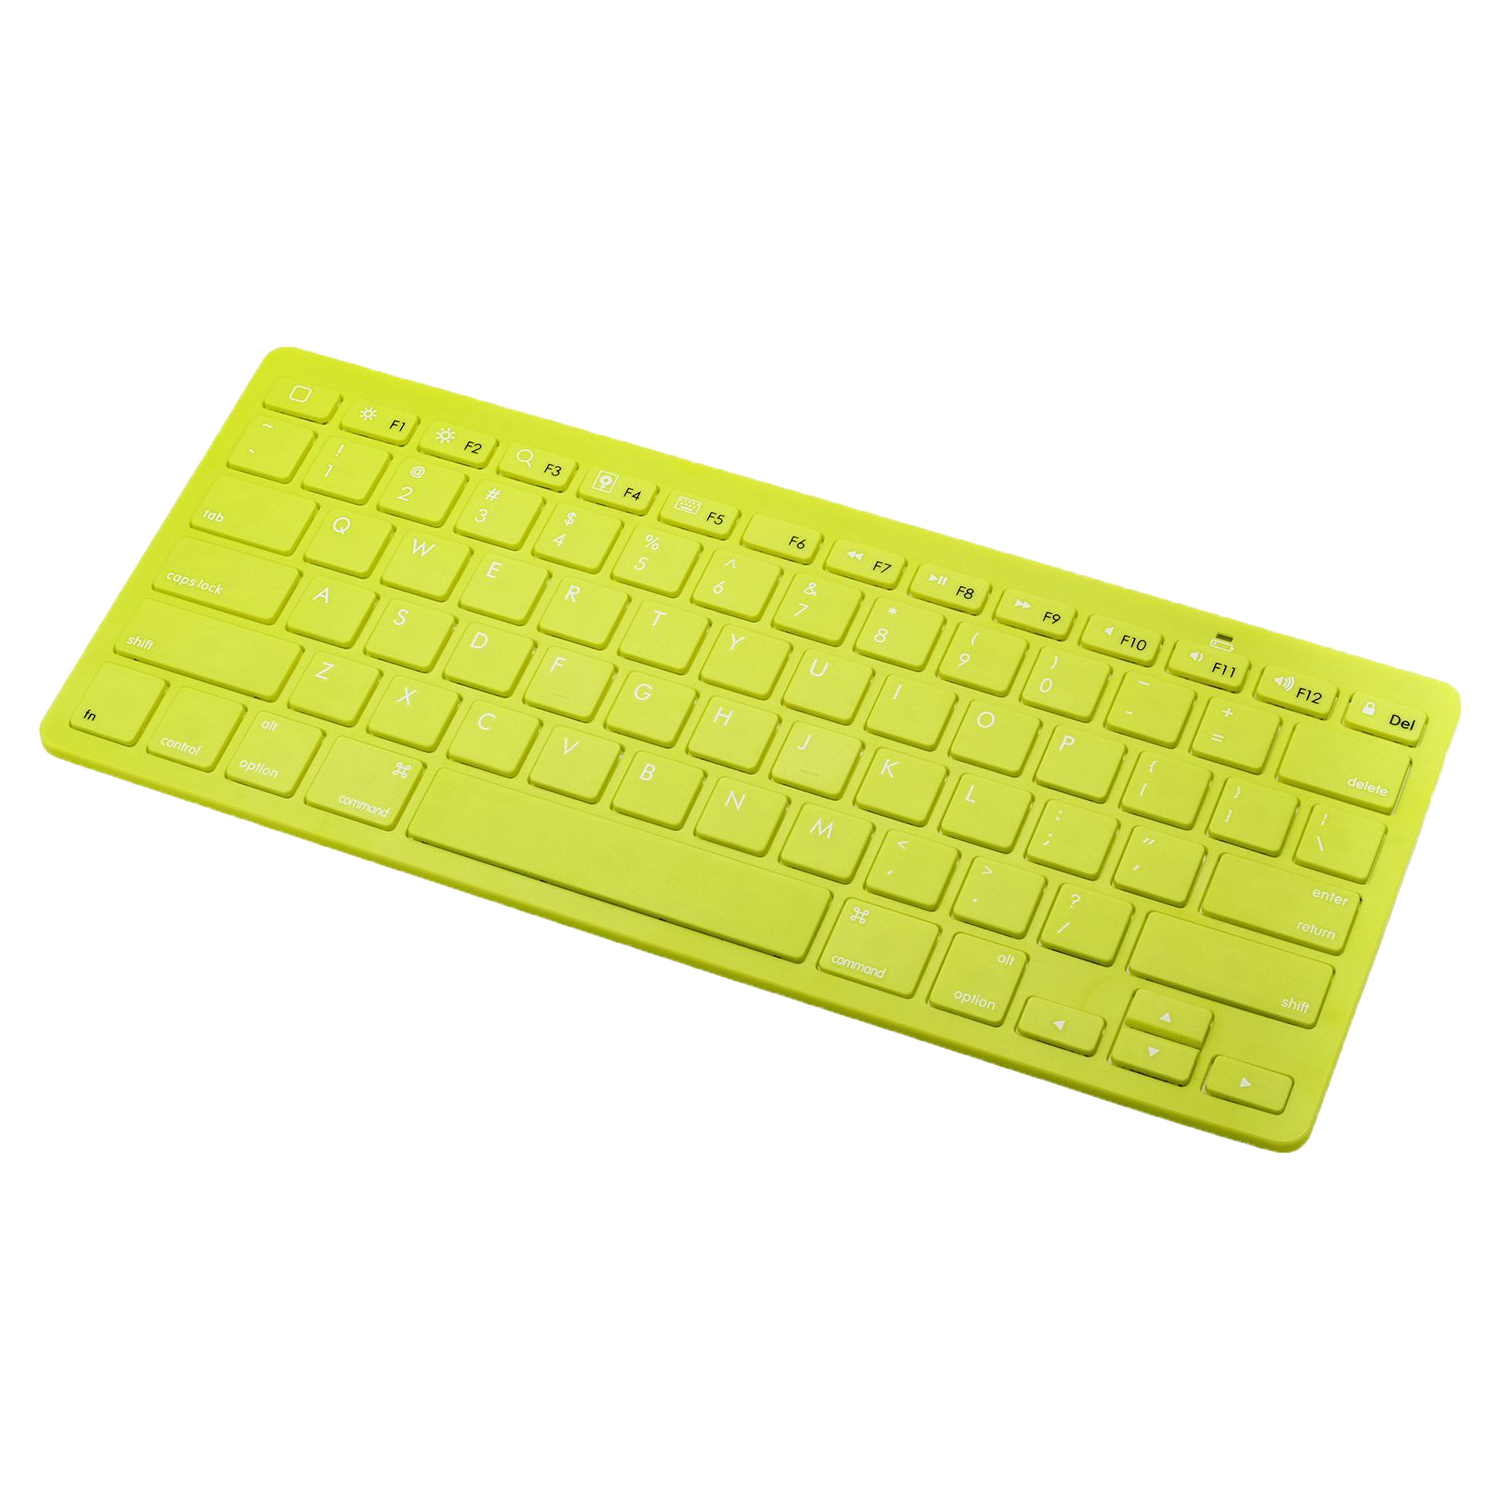 Hype Ultra-Slim Bluetooth Wireless Keyboard for Apple iPhone 6 Plus 5s iPad...